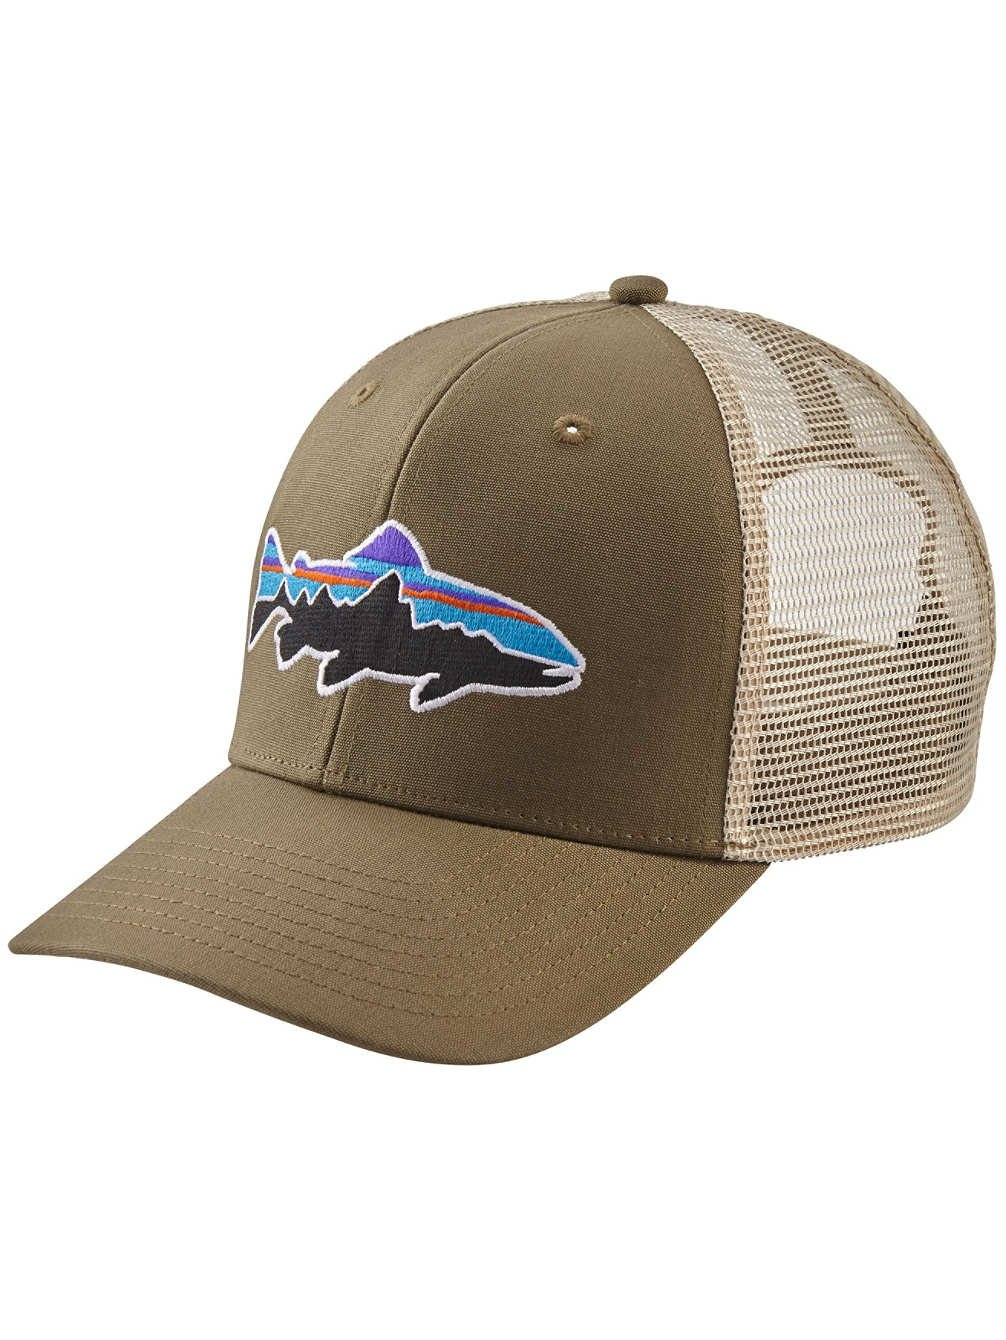 Patagonia Fitz Roy Trout Trucker Hat B0717149JV One Size|Dkas Dkas One Size